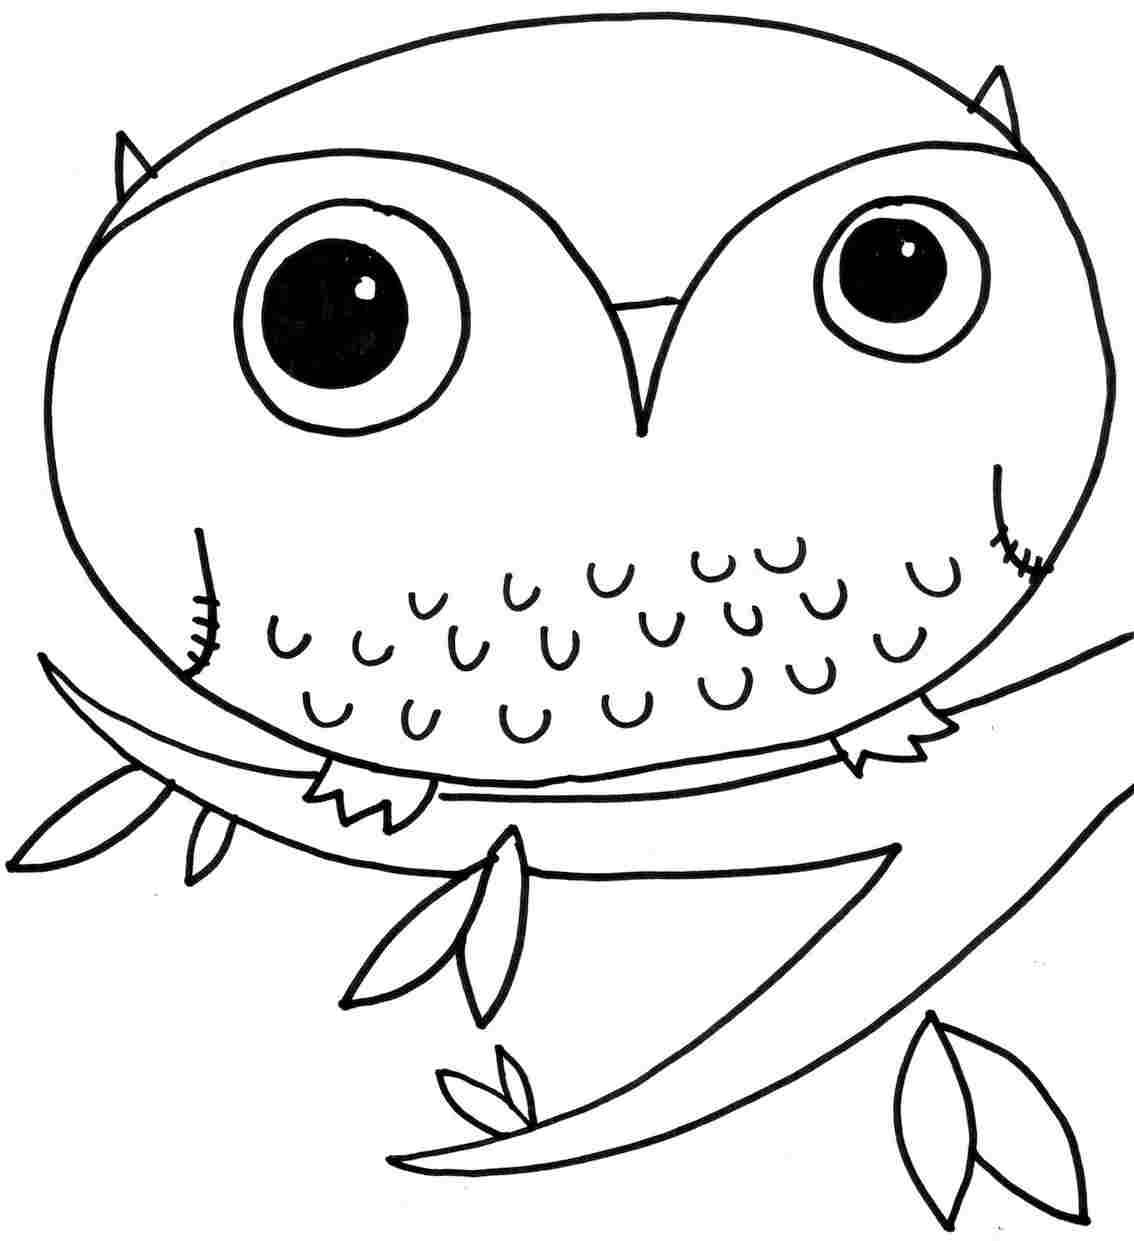 Barn Owl Face Drawing at GetDrawings.com | Free for personal use ...